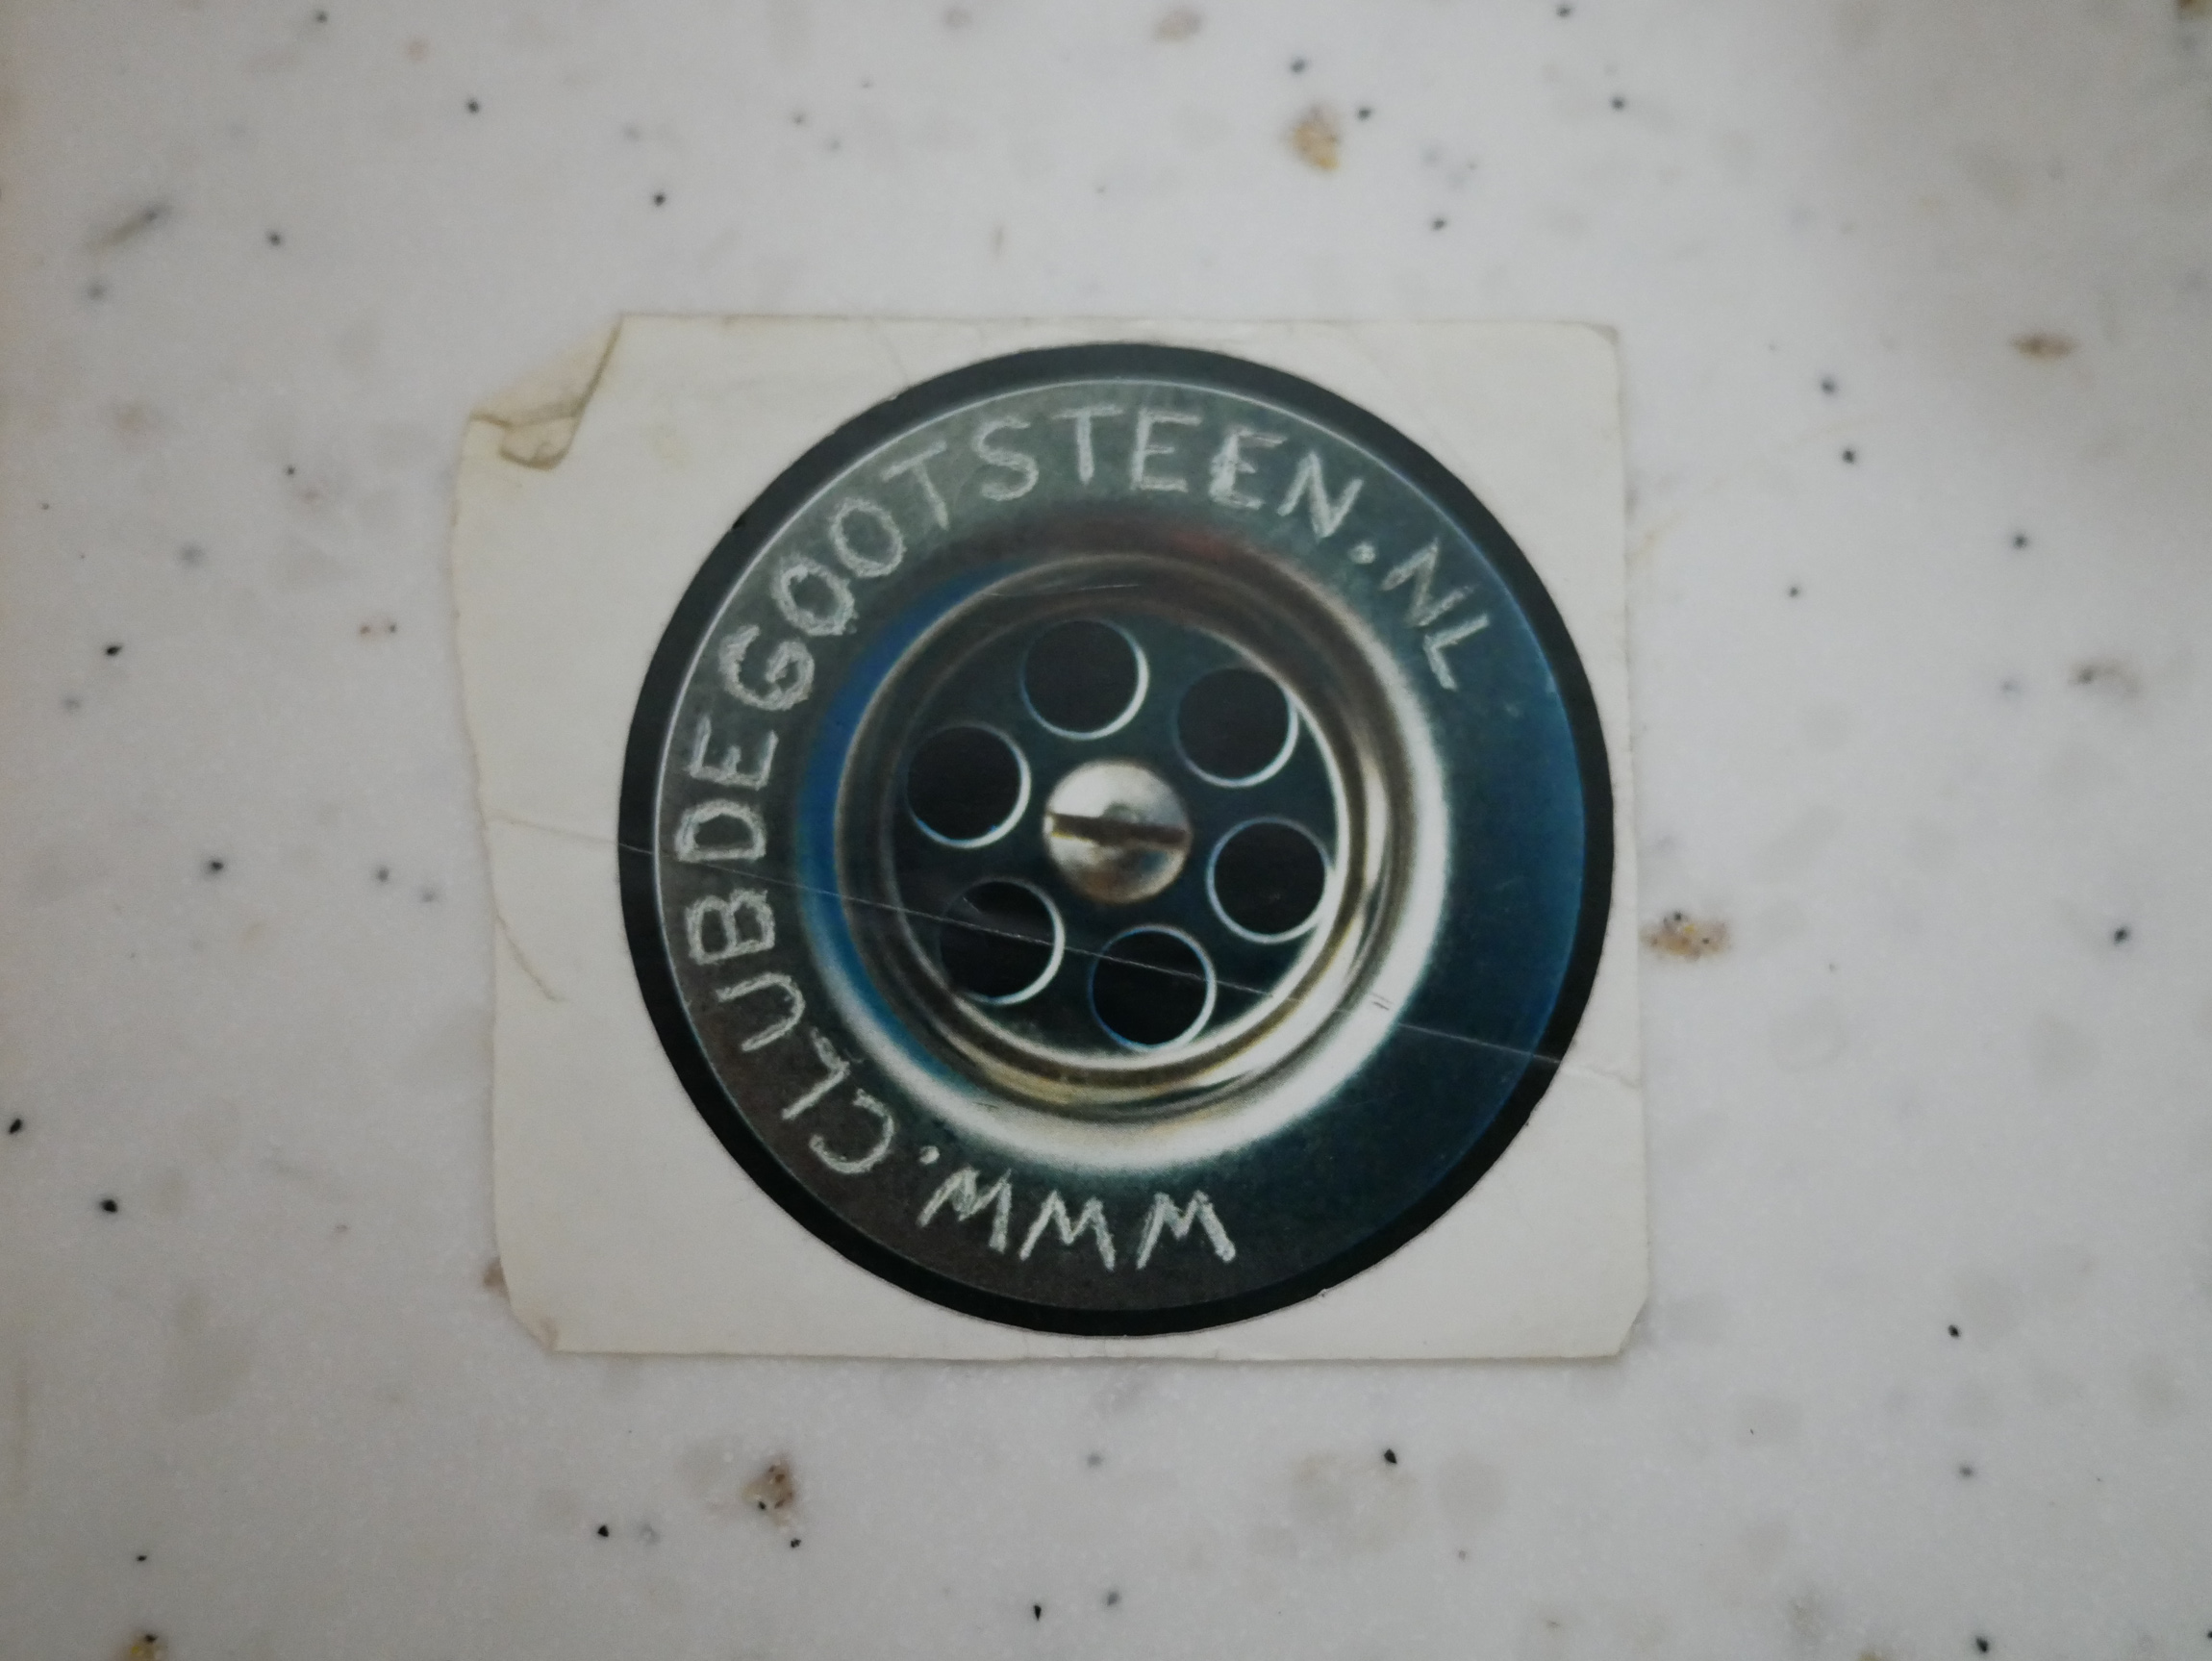 Stickers of the club were spread around the city and can be found in many toilets of bars and clubs in Groningen.